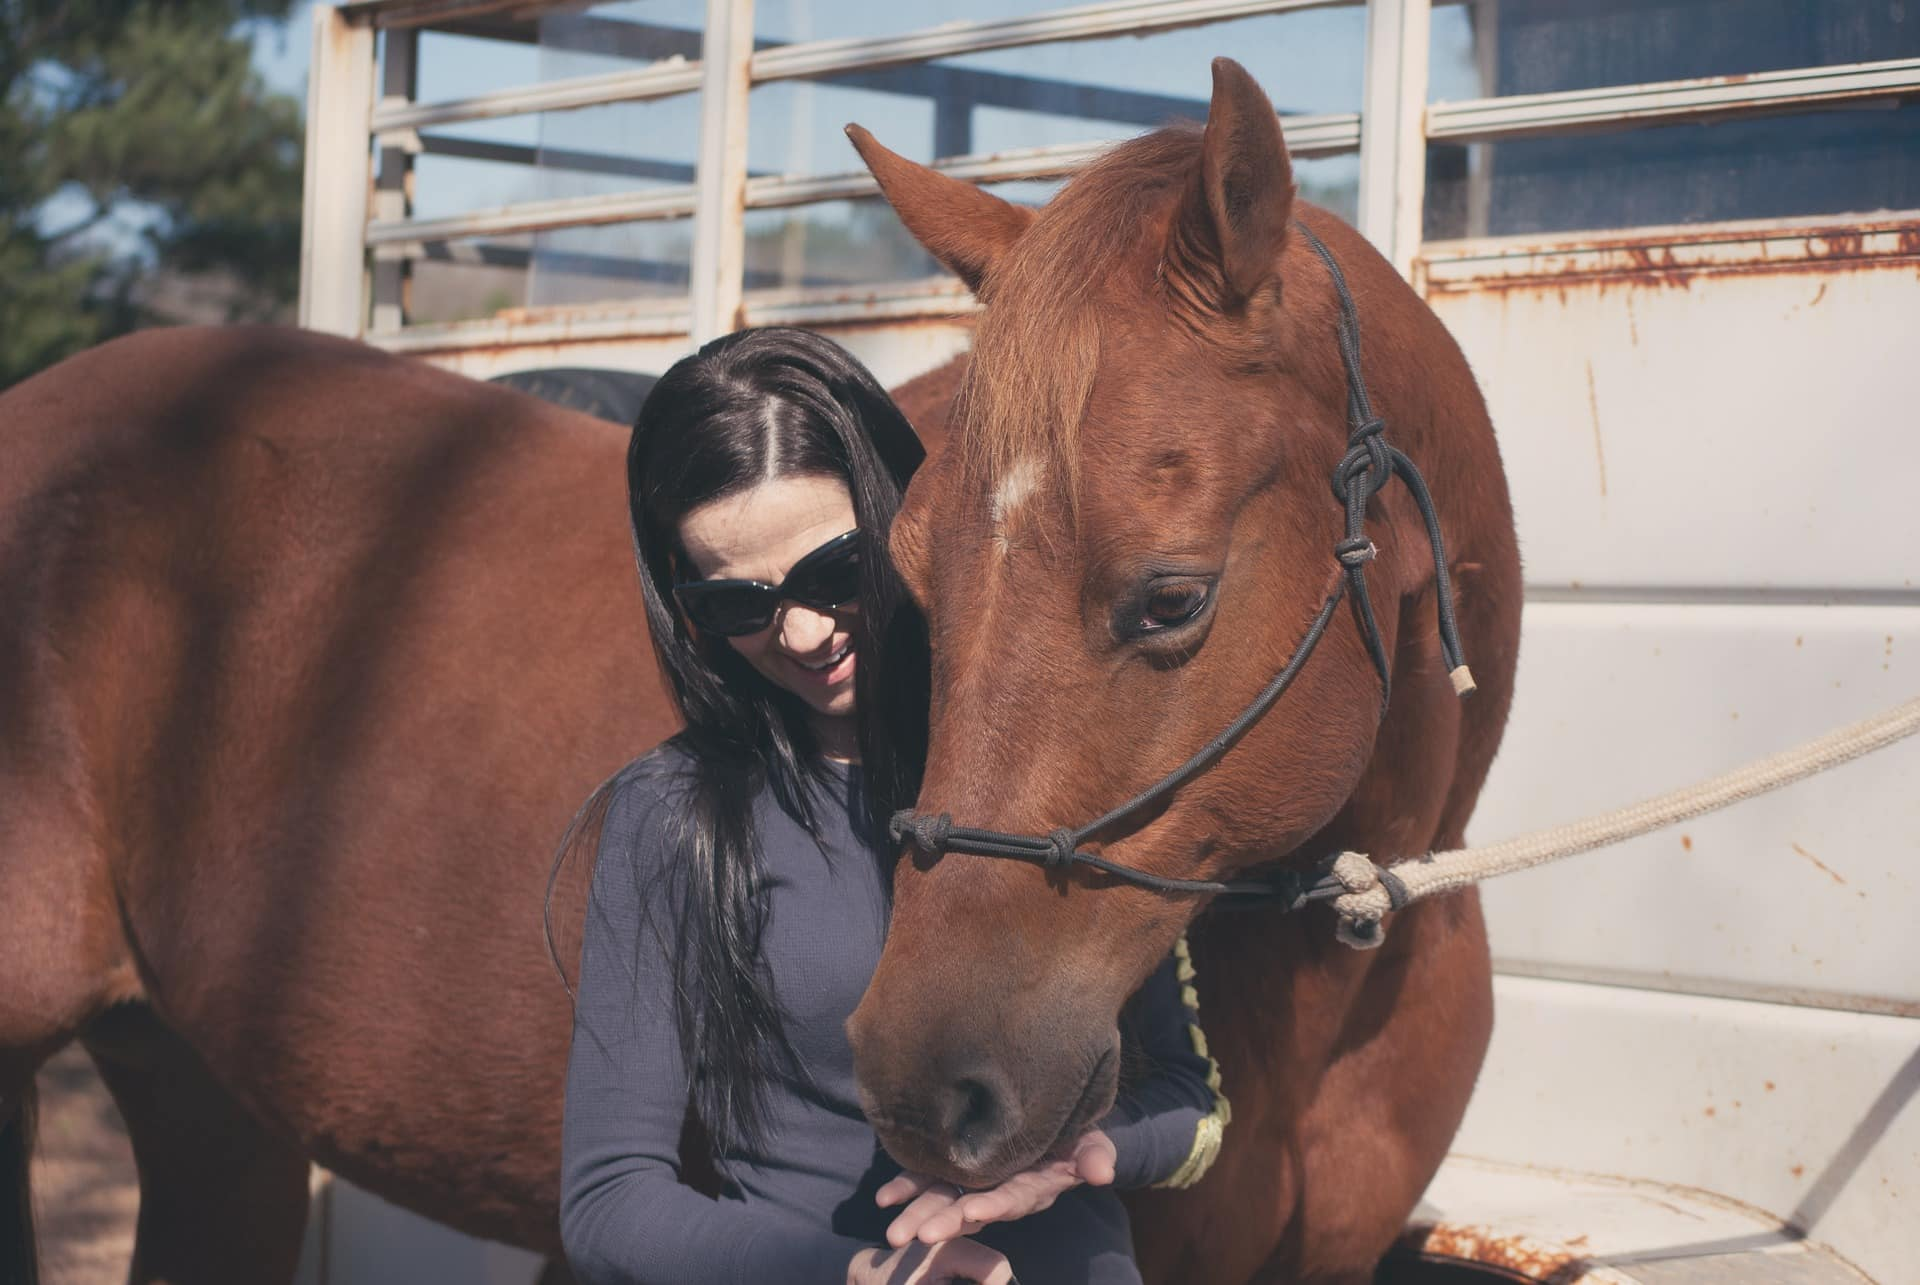 Horse care tips and tricks for a better and longer relationship with your horse